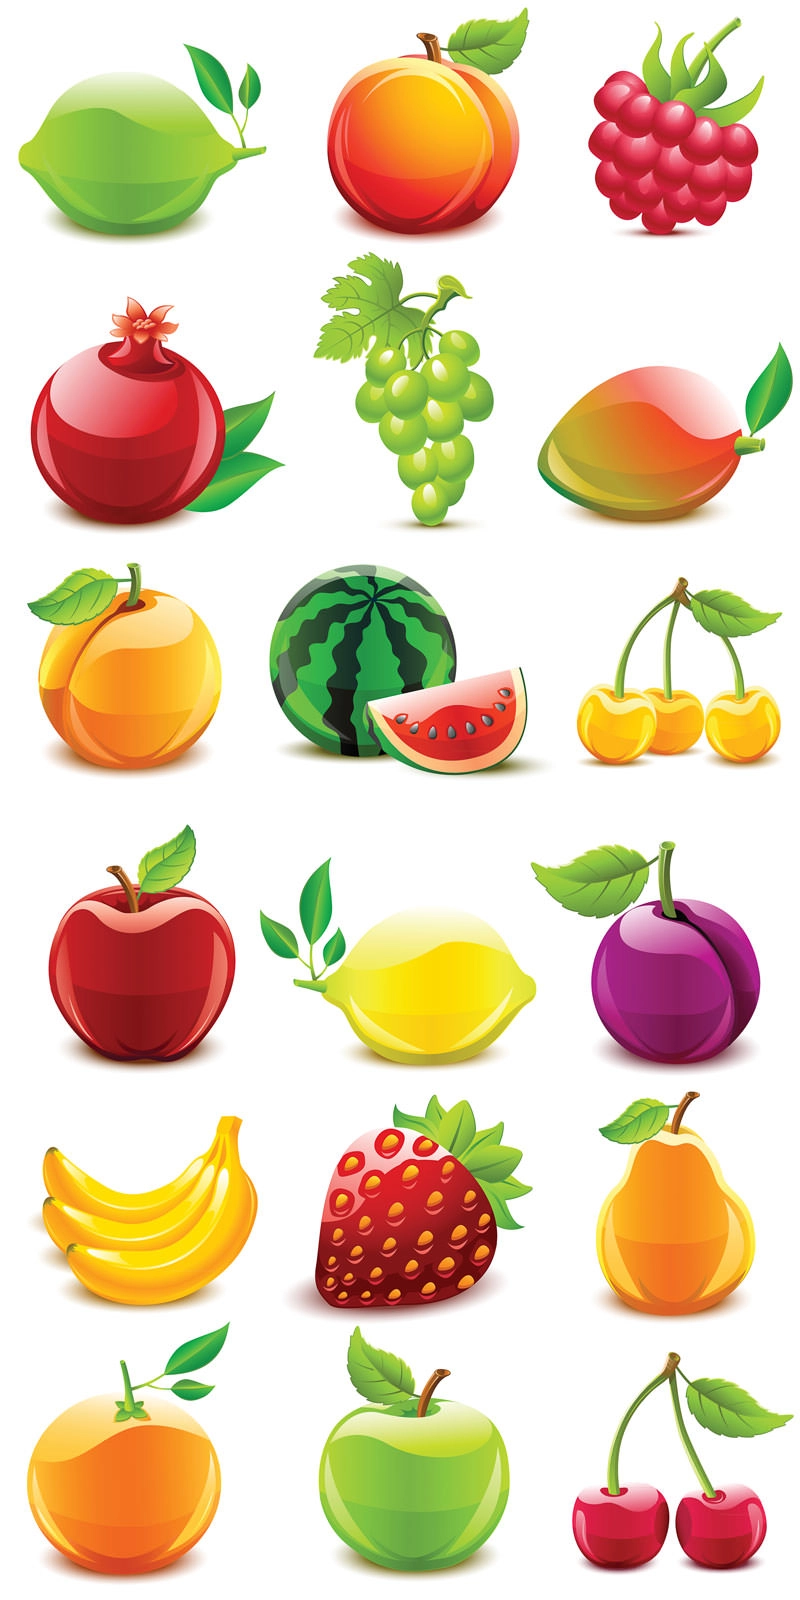 Download 50 Free Vector Fruits Vegetables Icons Fruit Icons Fruit Vector Fruit